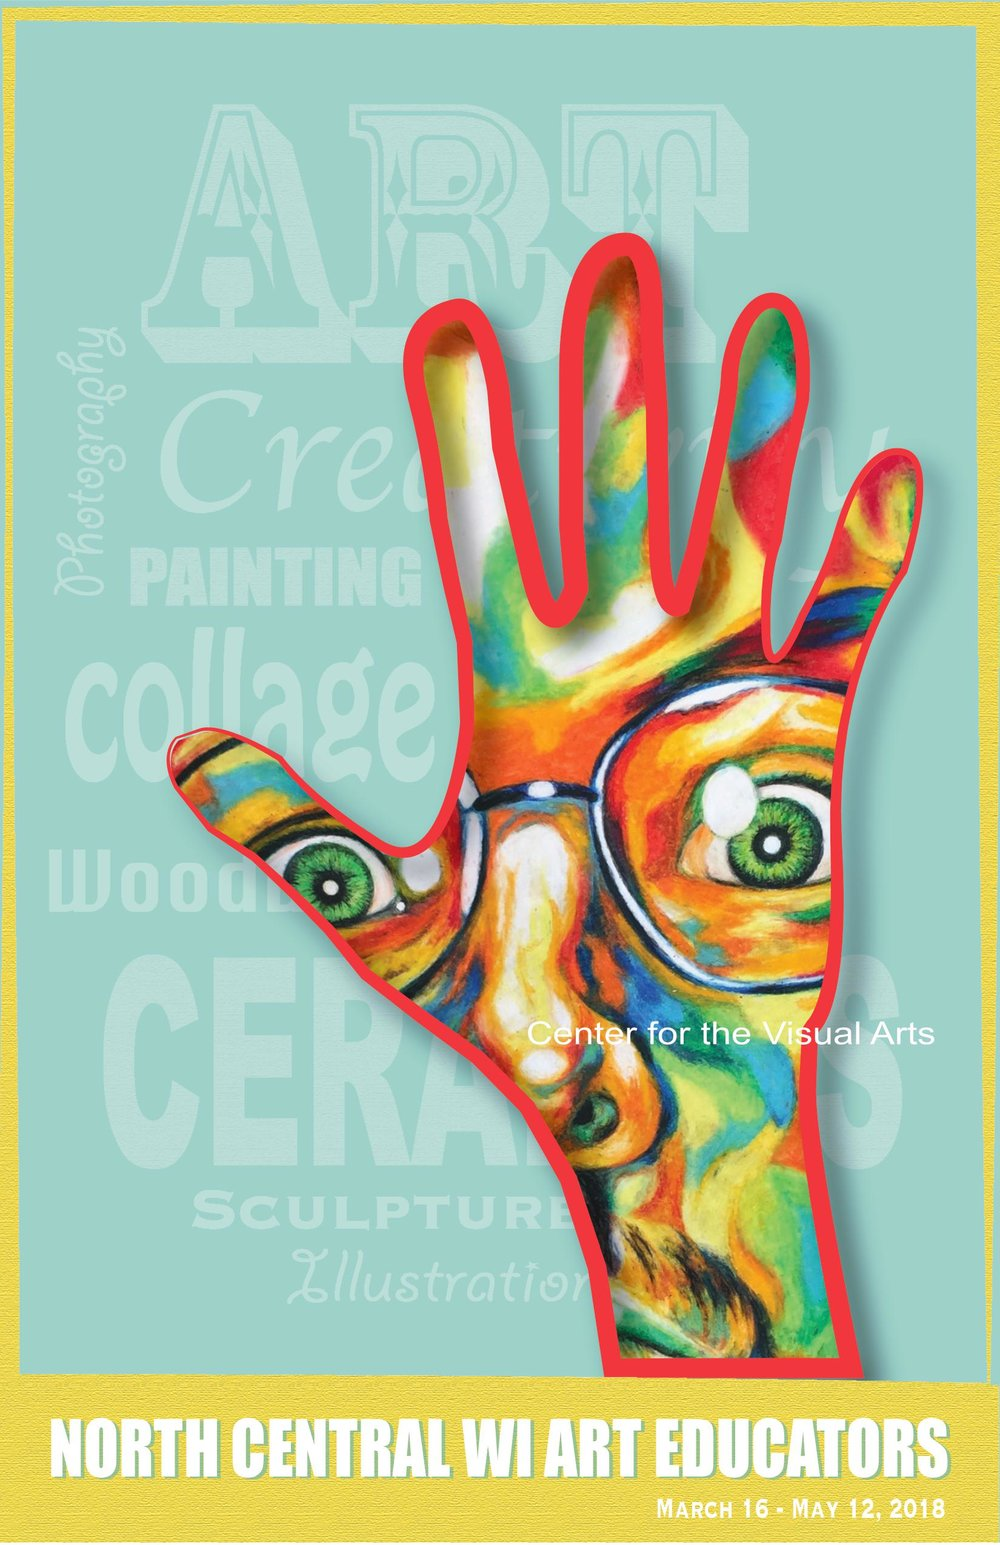 North Central WisconsinArt Educators - March 16 - May 12, 2018Opening Gallery Gala:Thursday, April 5th from 5-7pm